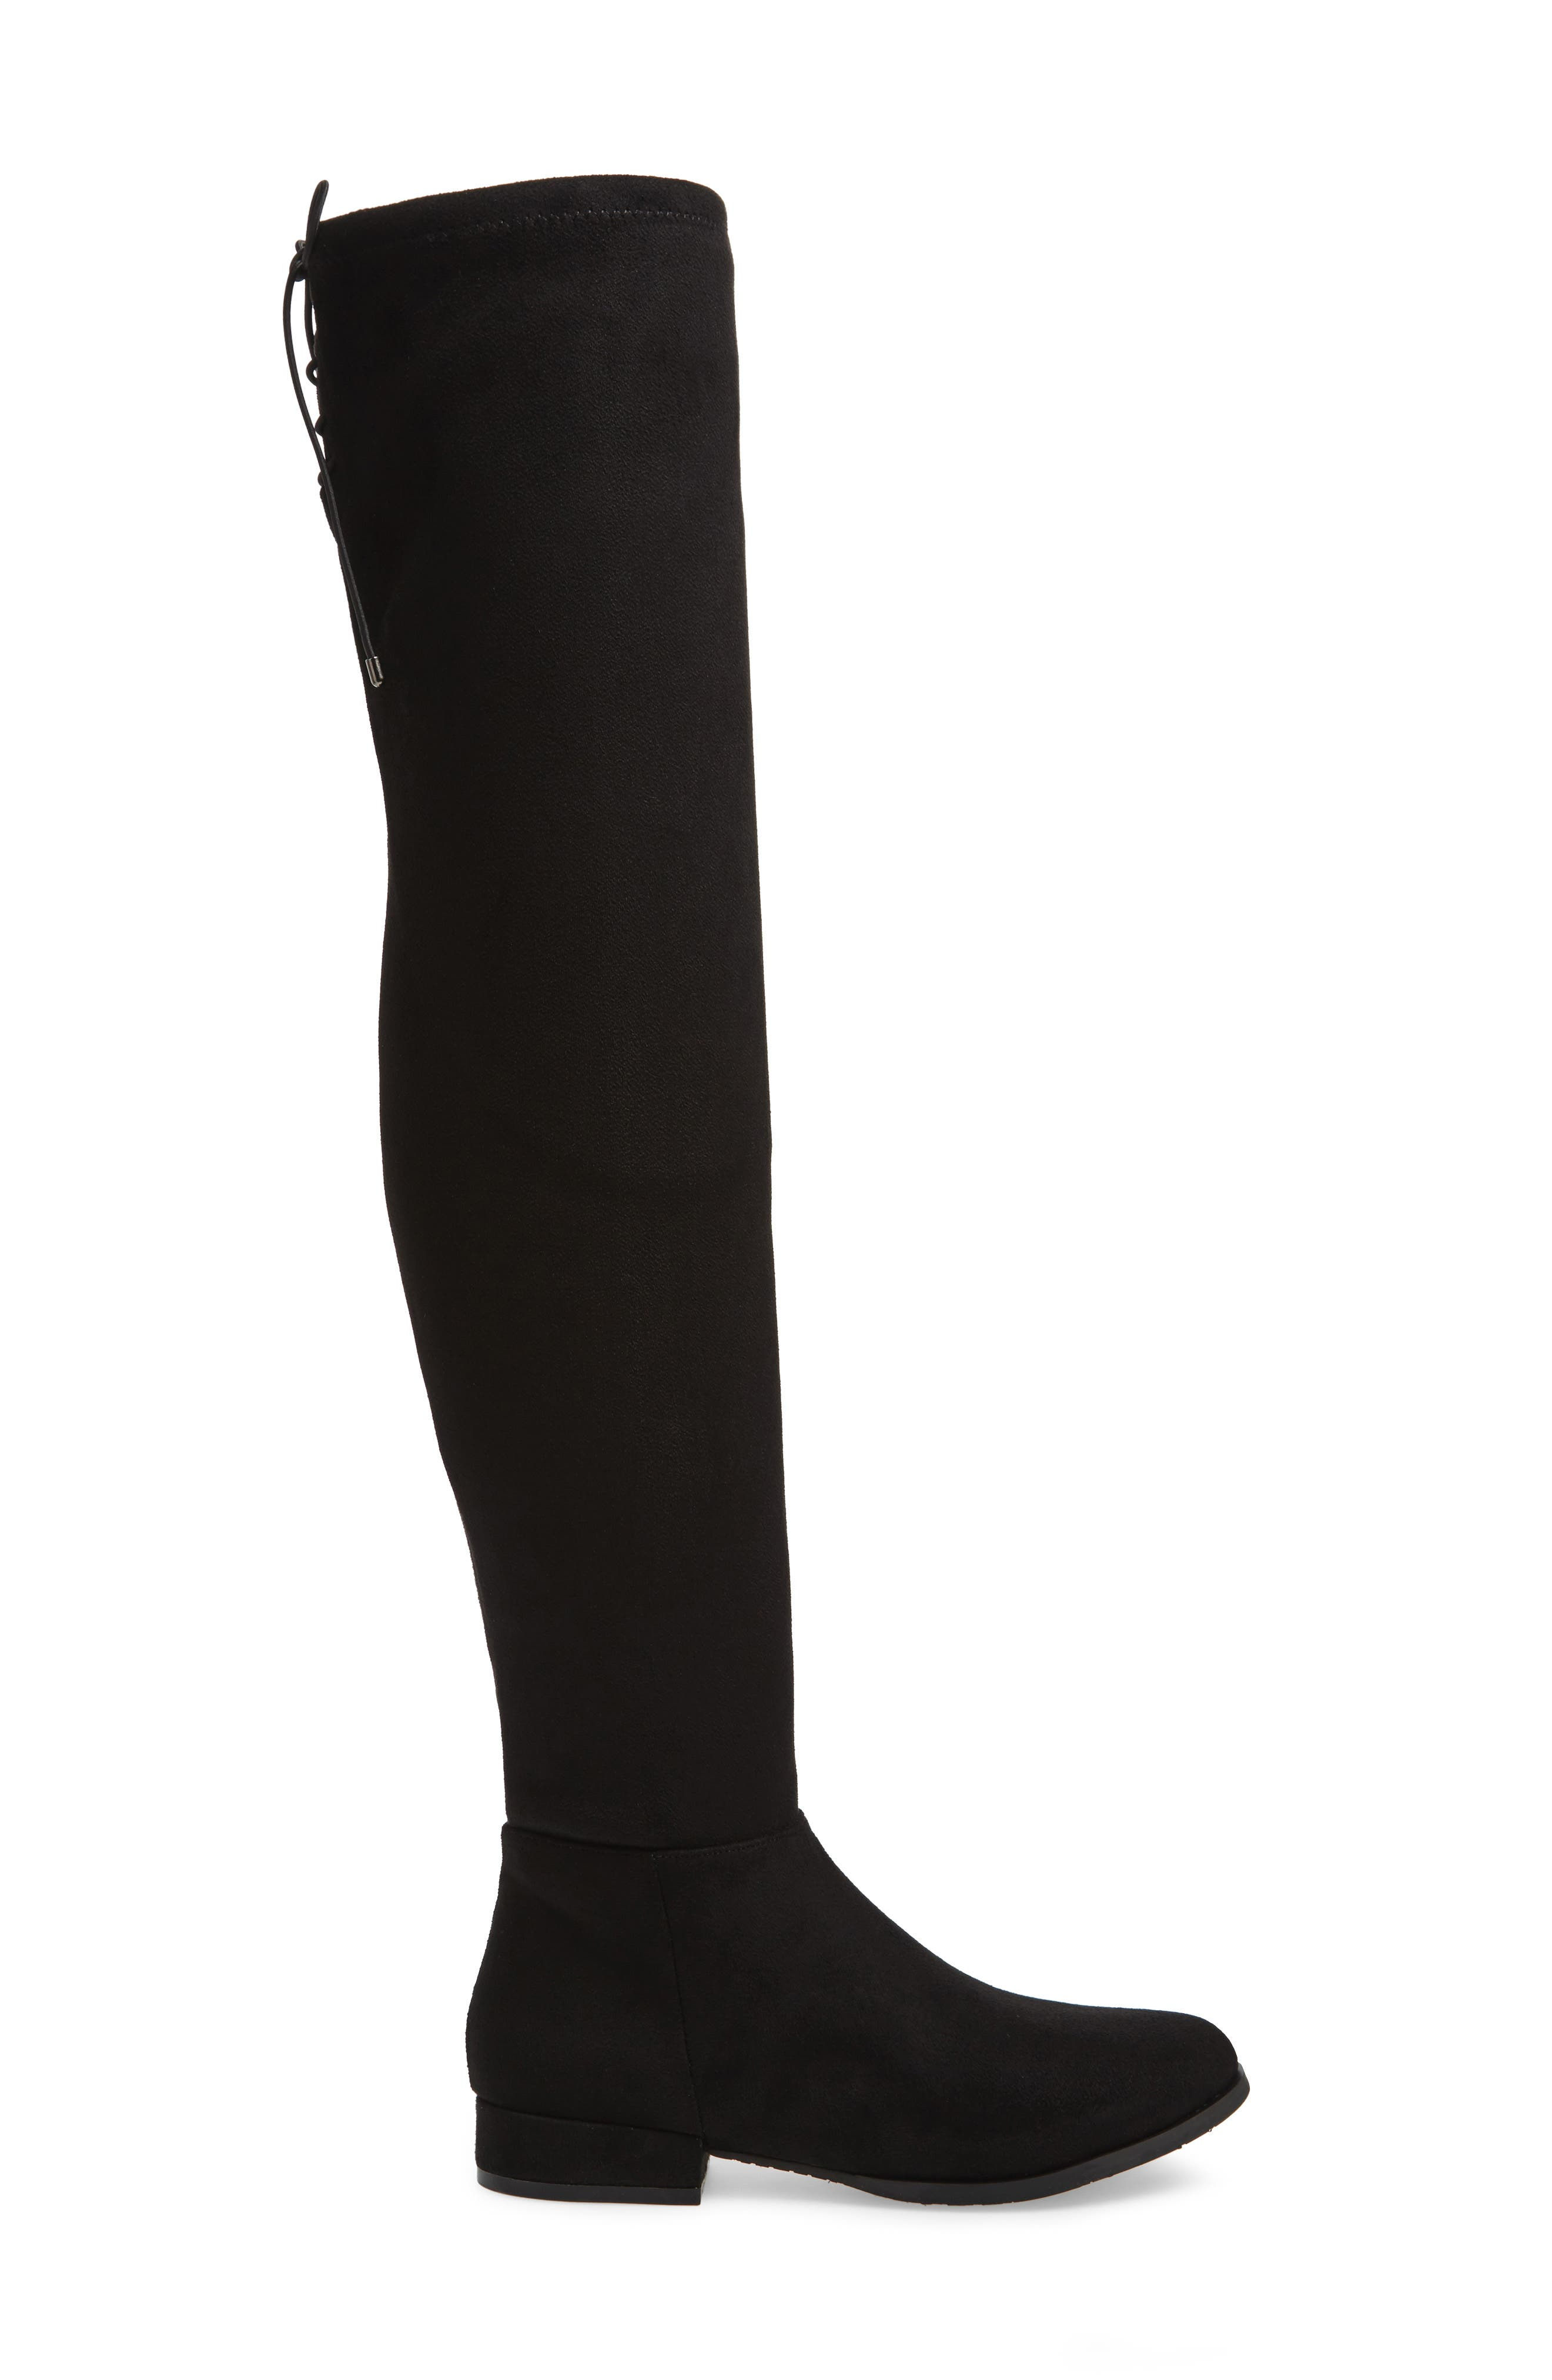 Rashelle Over the Knee Stretch Boot,                             Alternate thumbnail 2, color,                             Black Suede